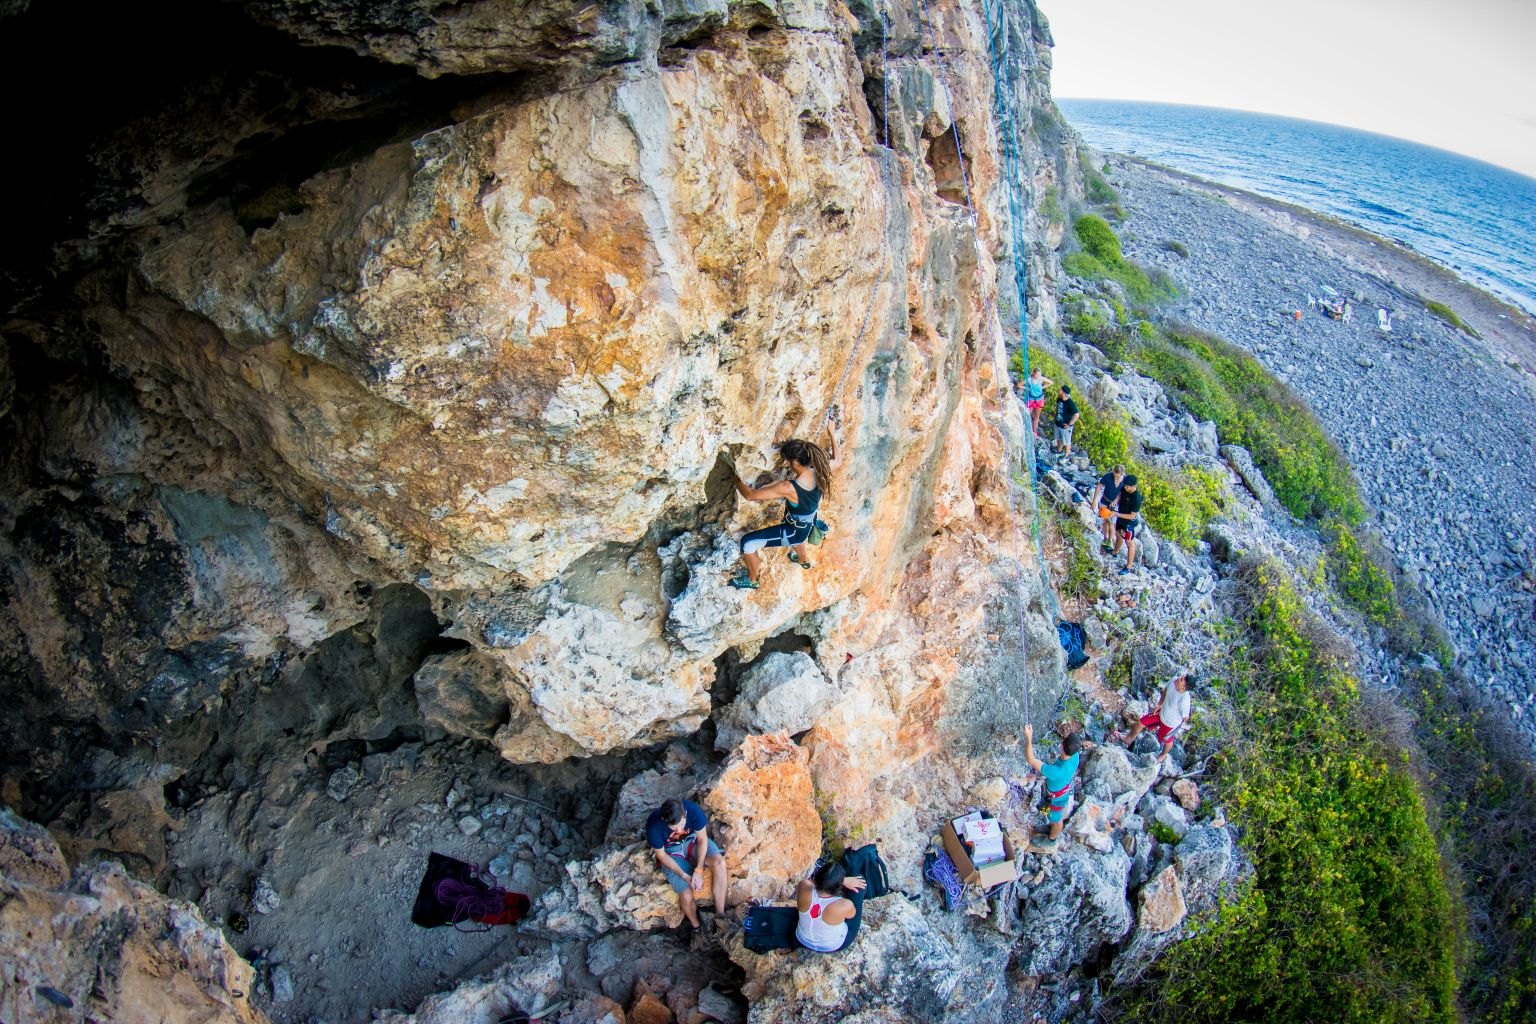 Climbing Cayman Brac - Open climb - Orange Cave - Photot by Jim